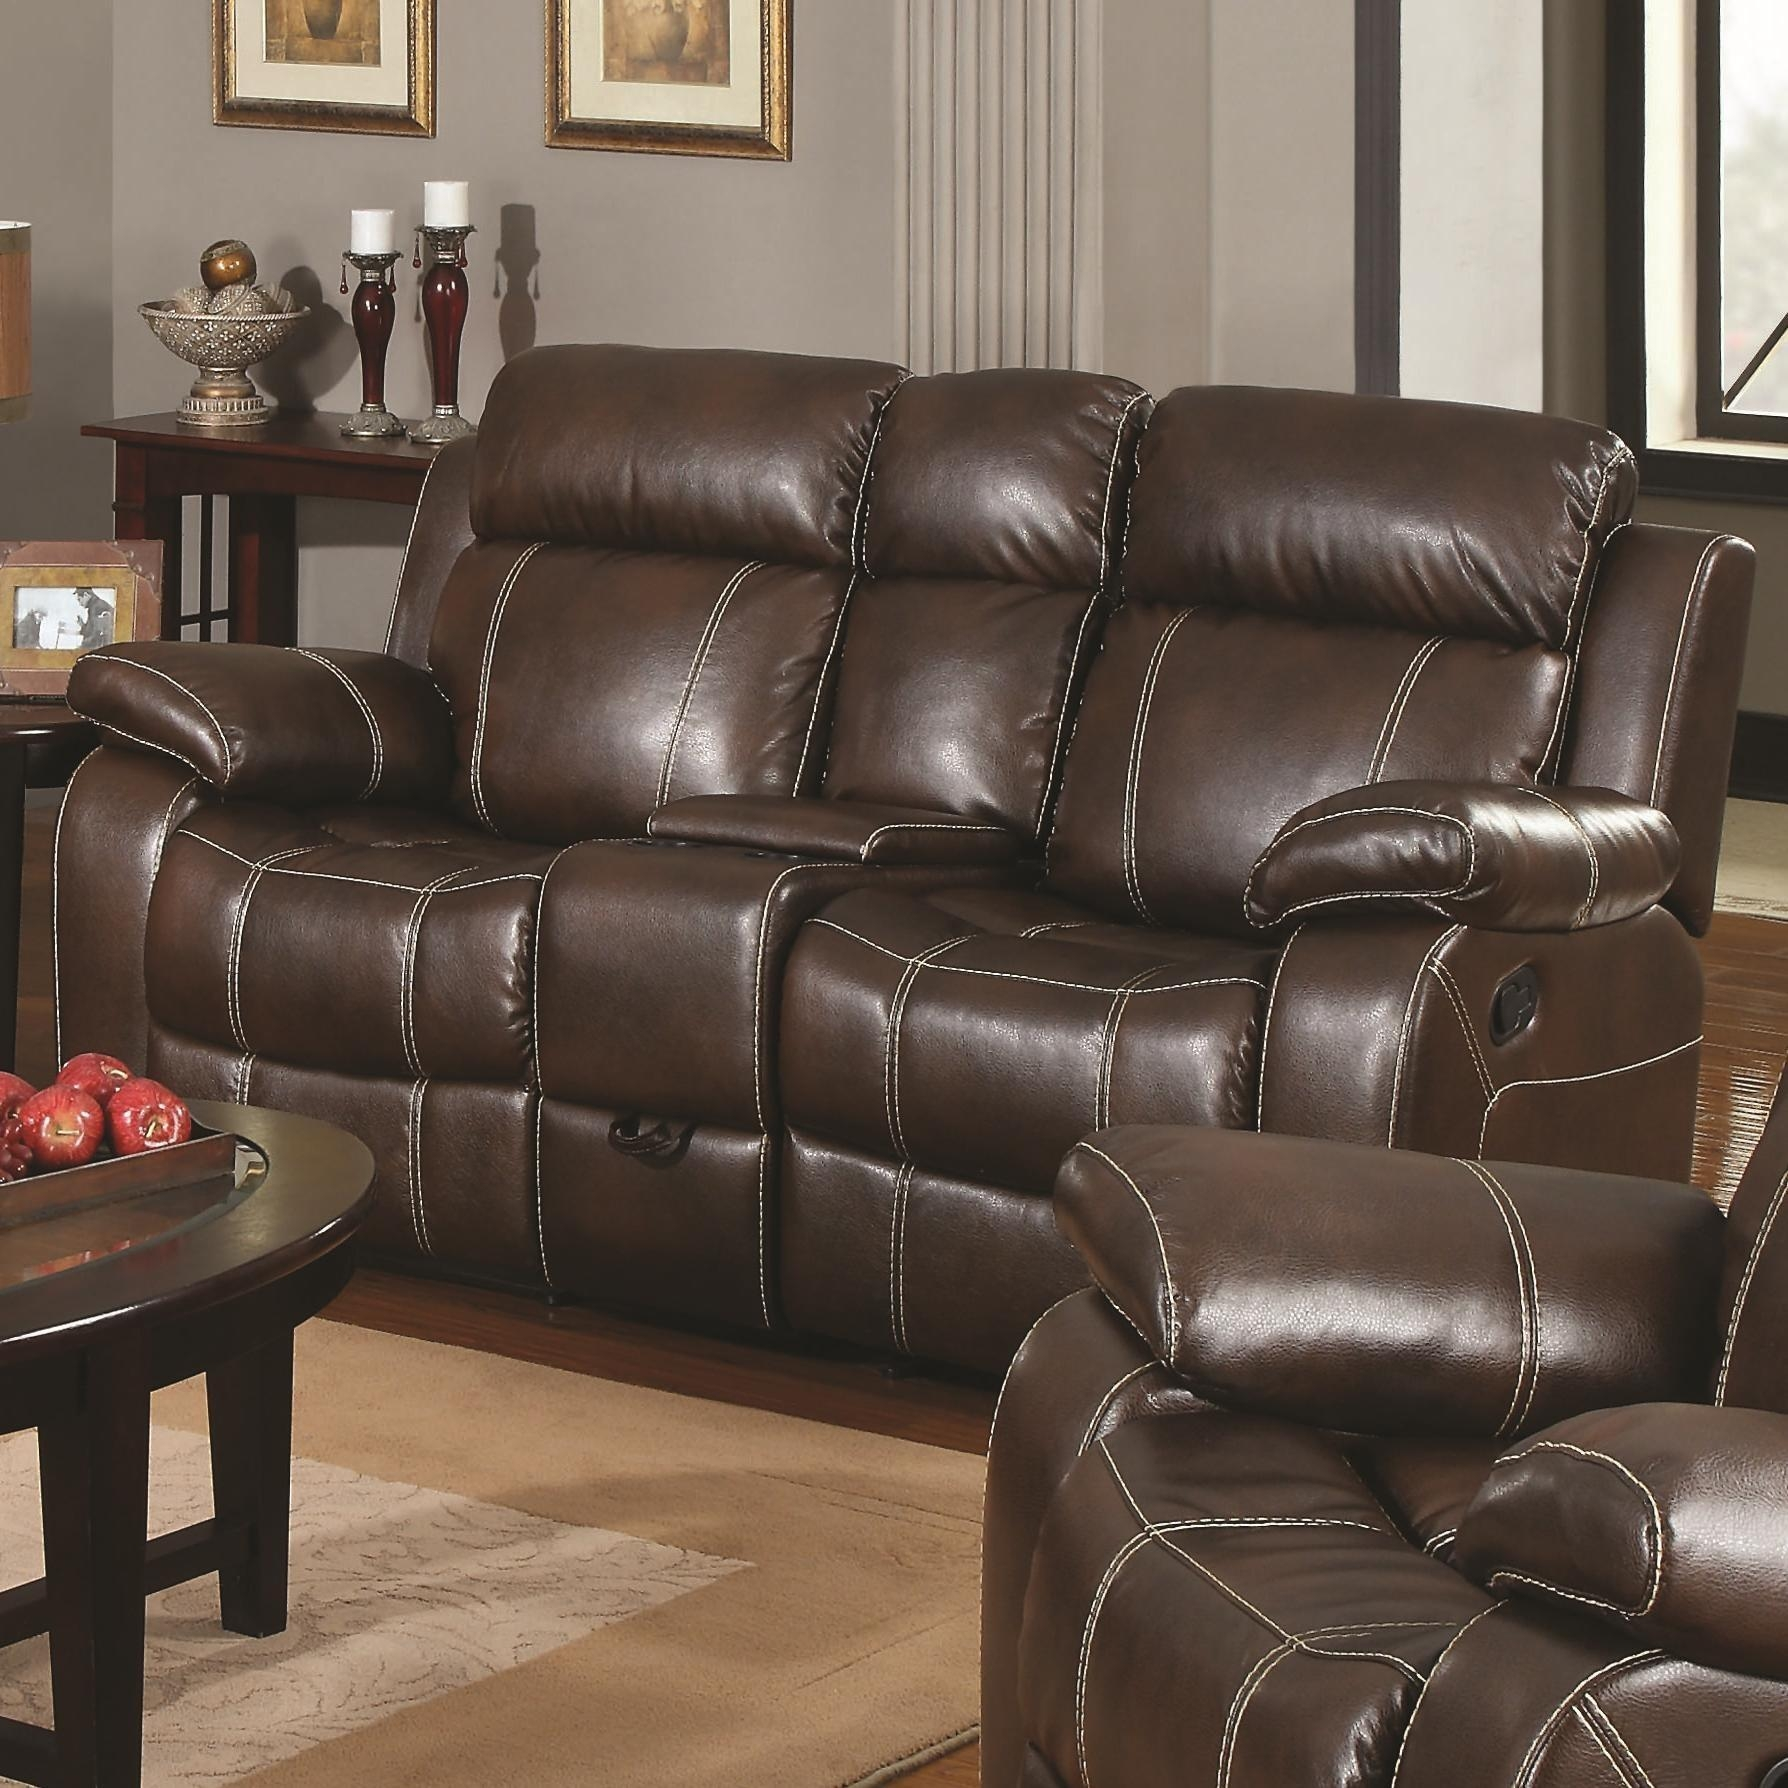 Myleene Collection 603021 Brown Leather Reclining Sofa & Loveseat Set With Regard To Reclining Sofas And Loveseats Sets (Image 10 of 20)